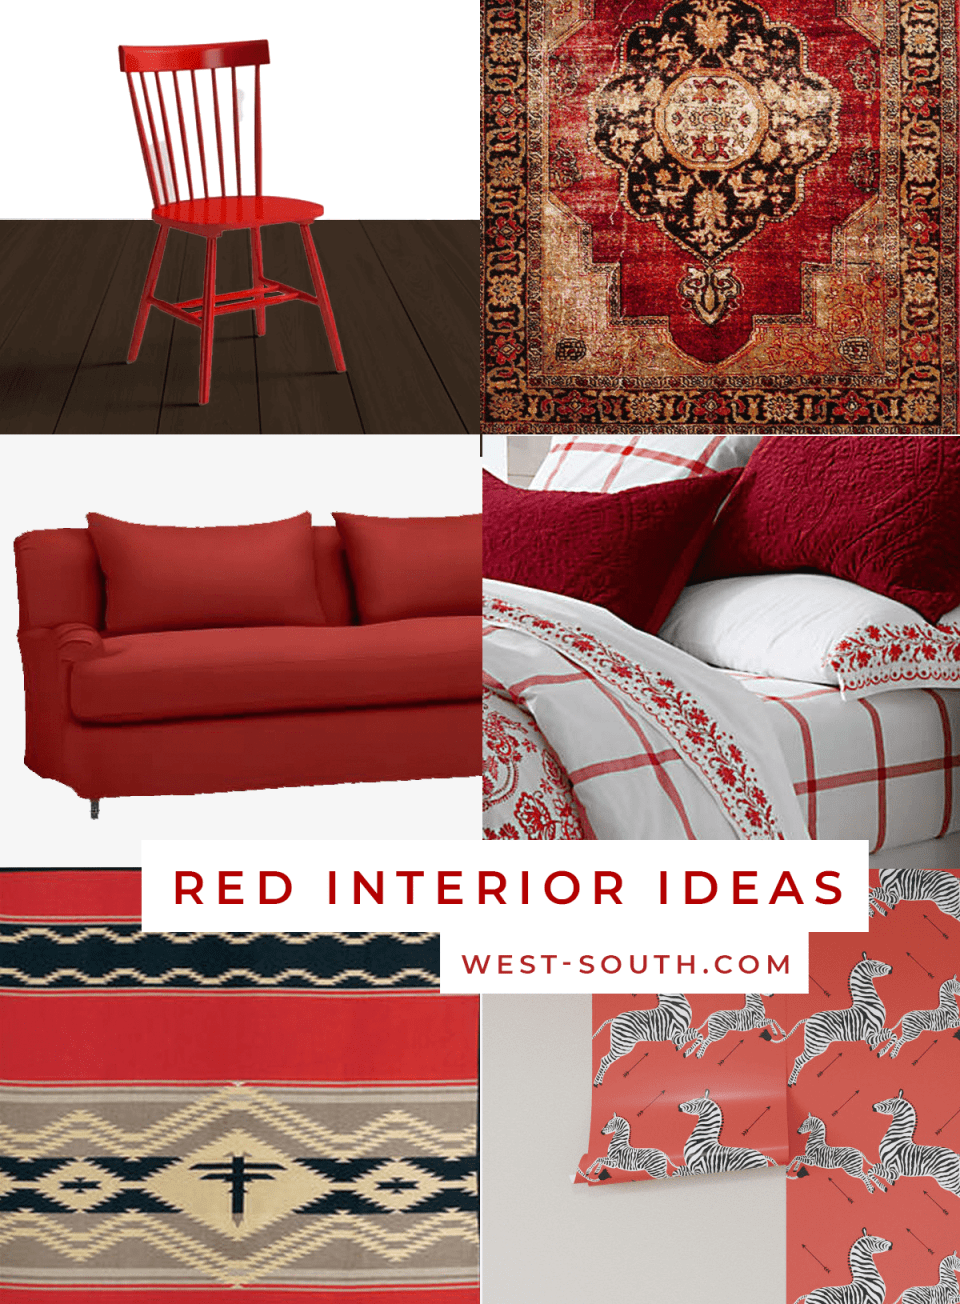 image of red interior decor products